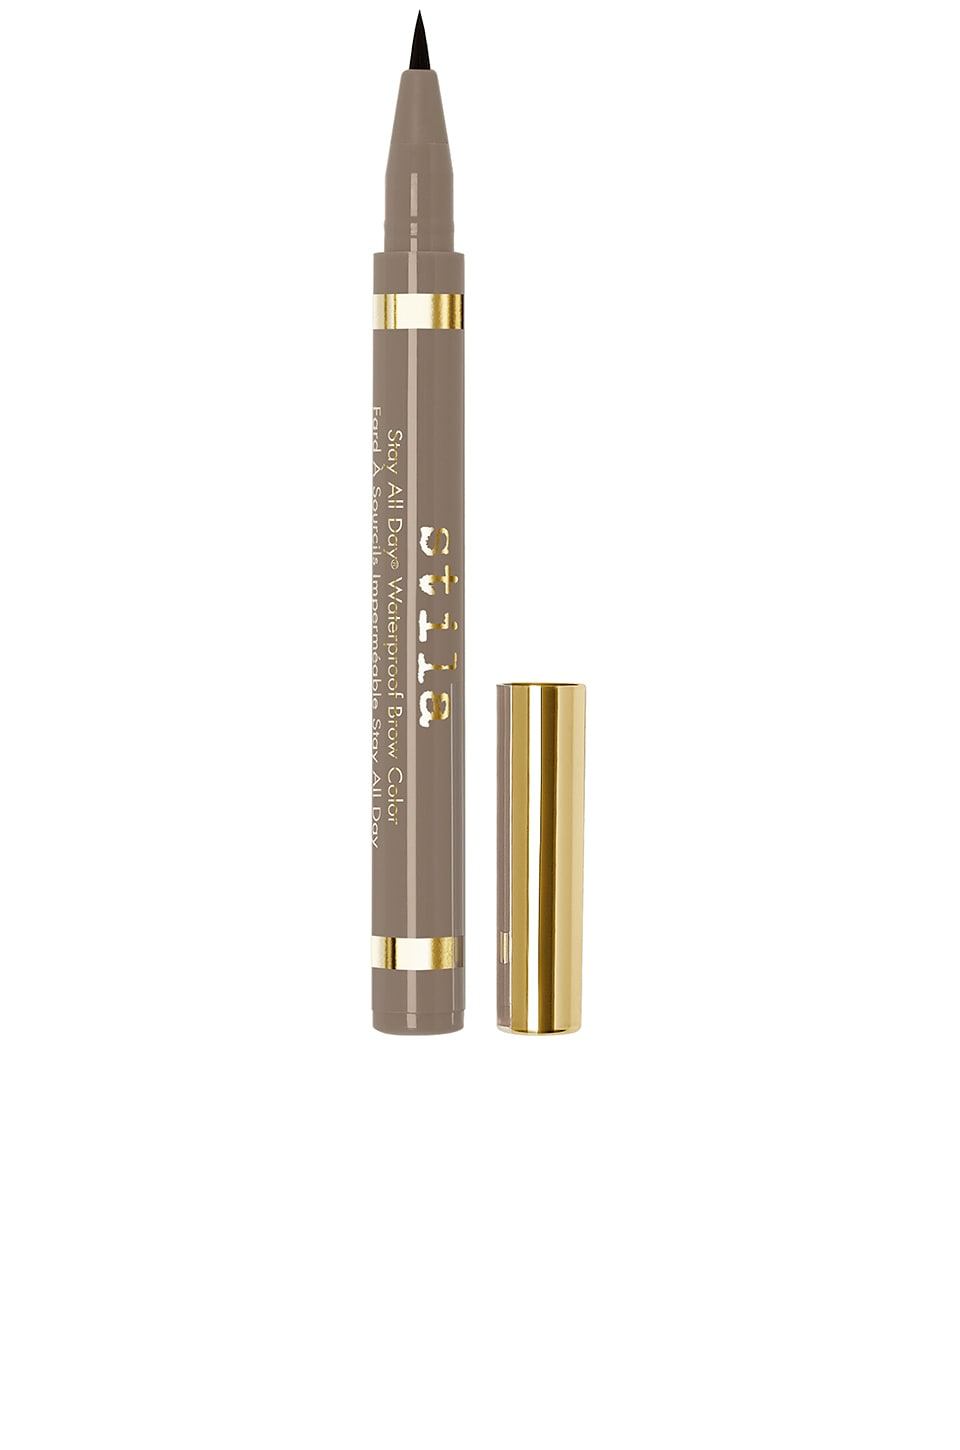 Stila Stay All Day Waterproof Brow Color in Medium